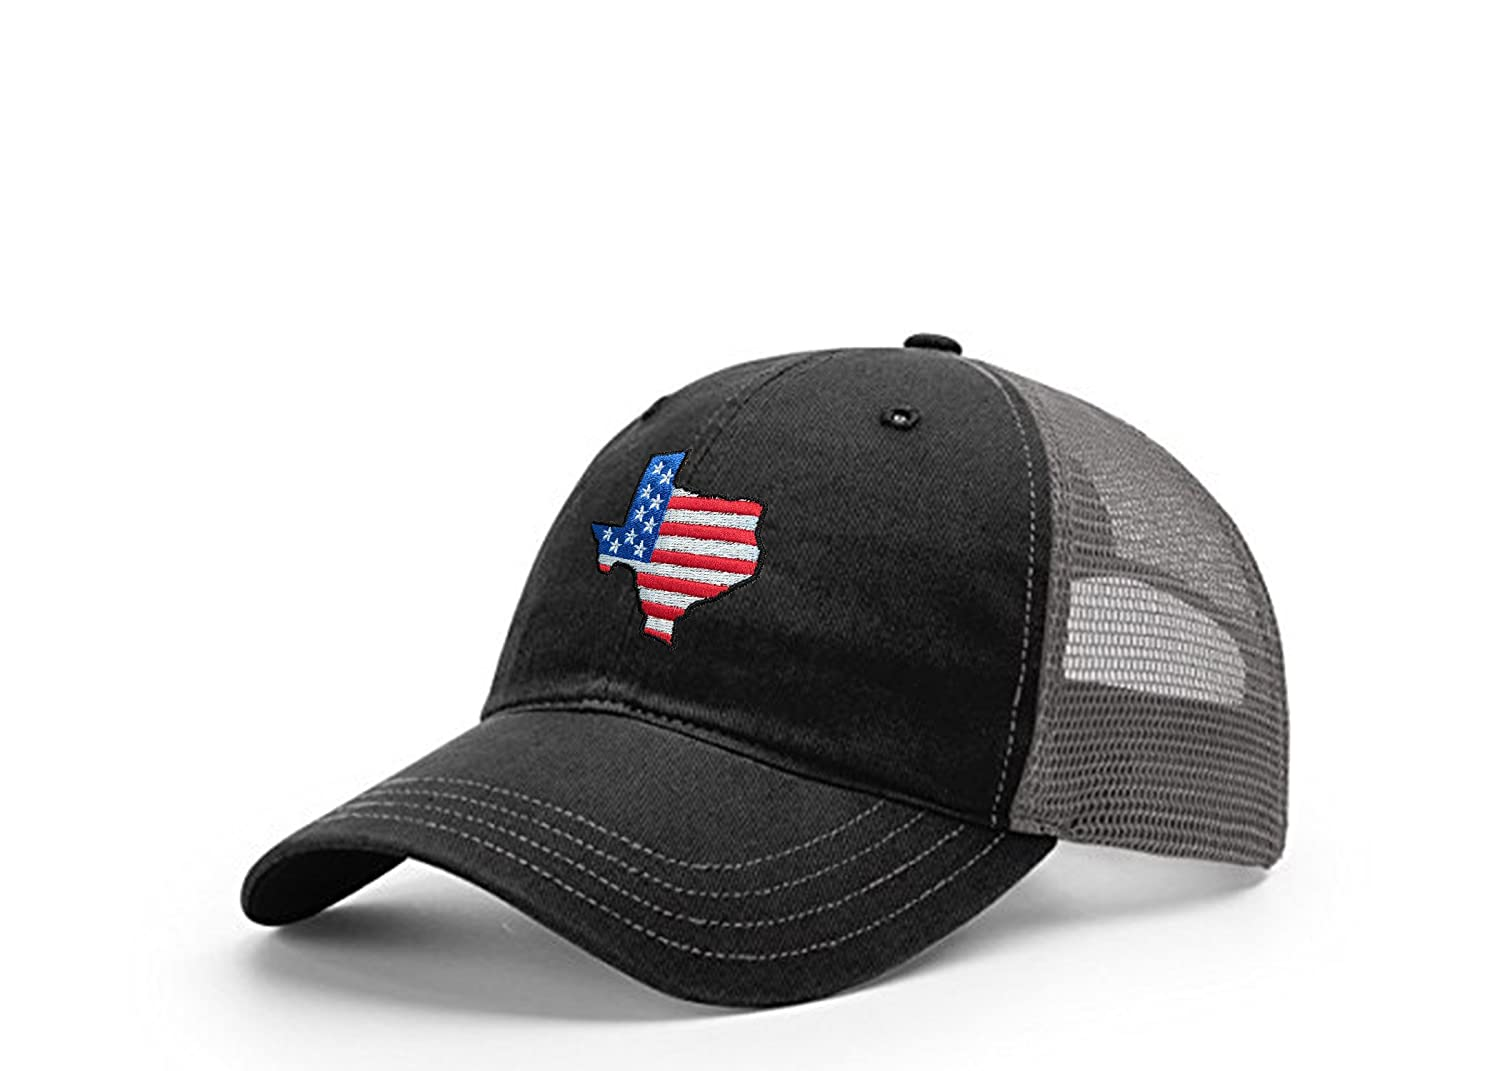 6ce33eb6b27 STATEE Texas American Flag Relaxed Fit Mesh Hat(Black Gray) at Amazon Men s  Clothing store